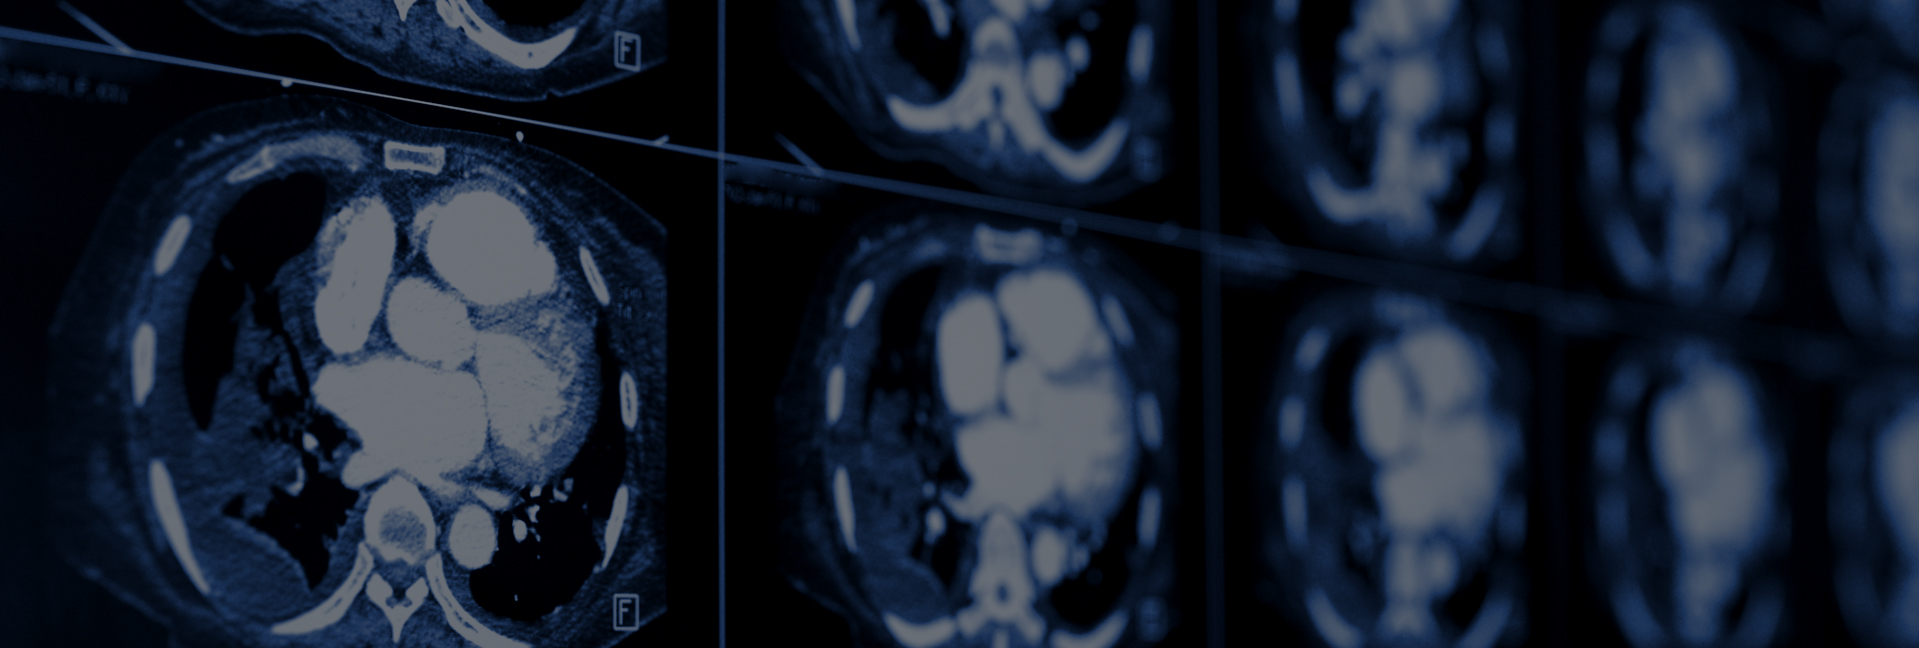 Experienced Radiologists